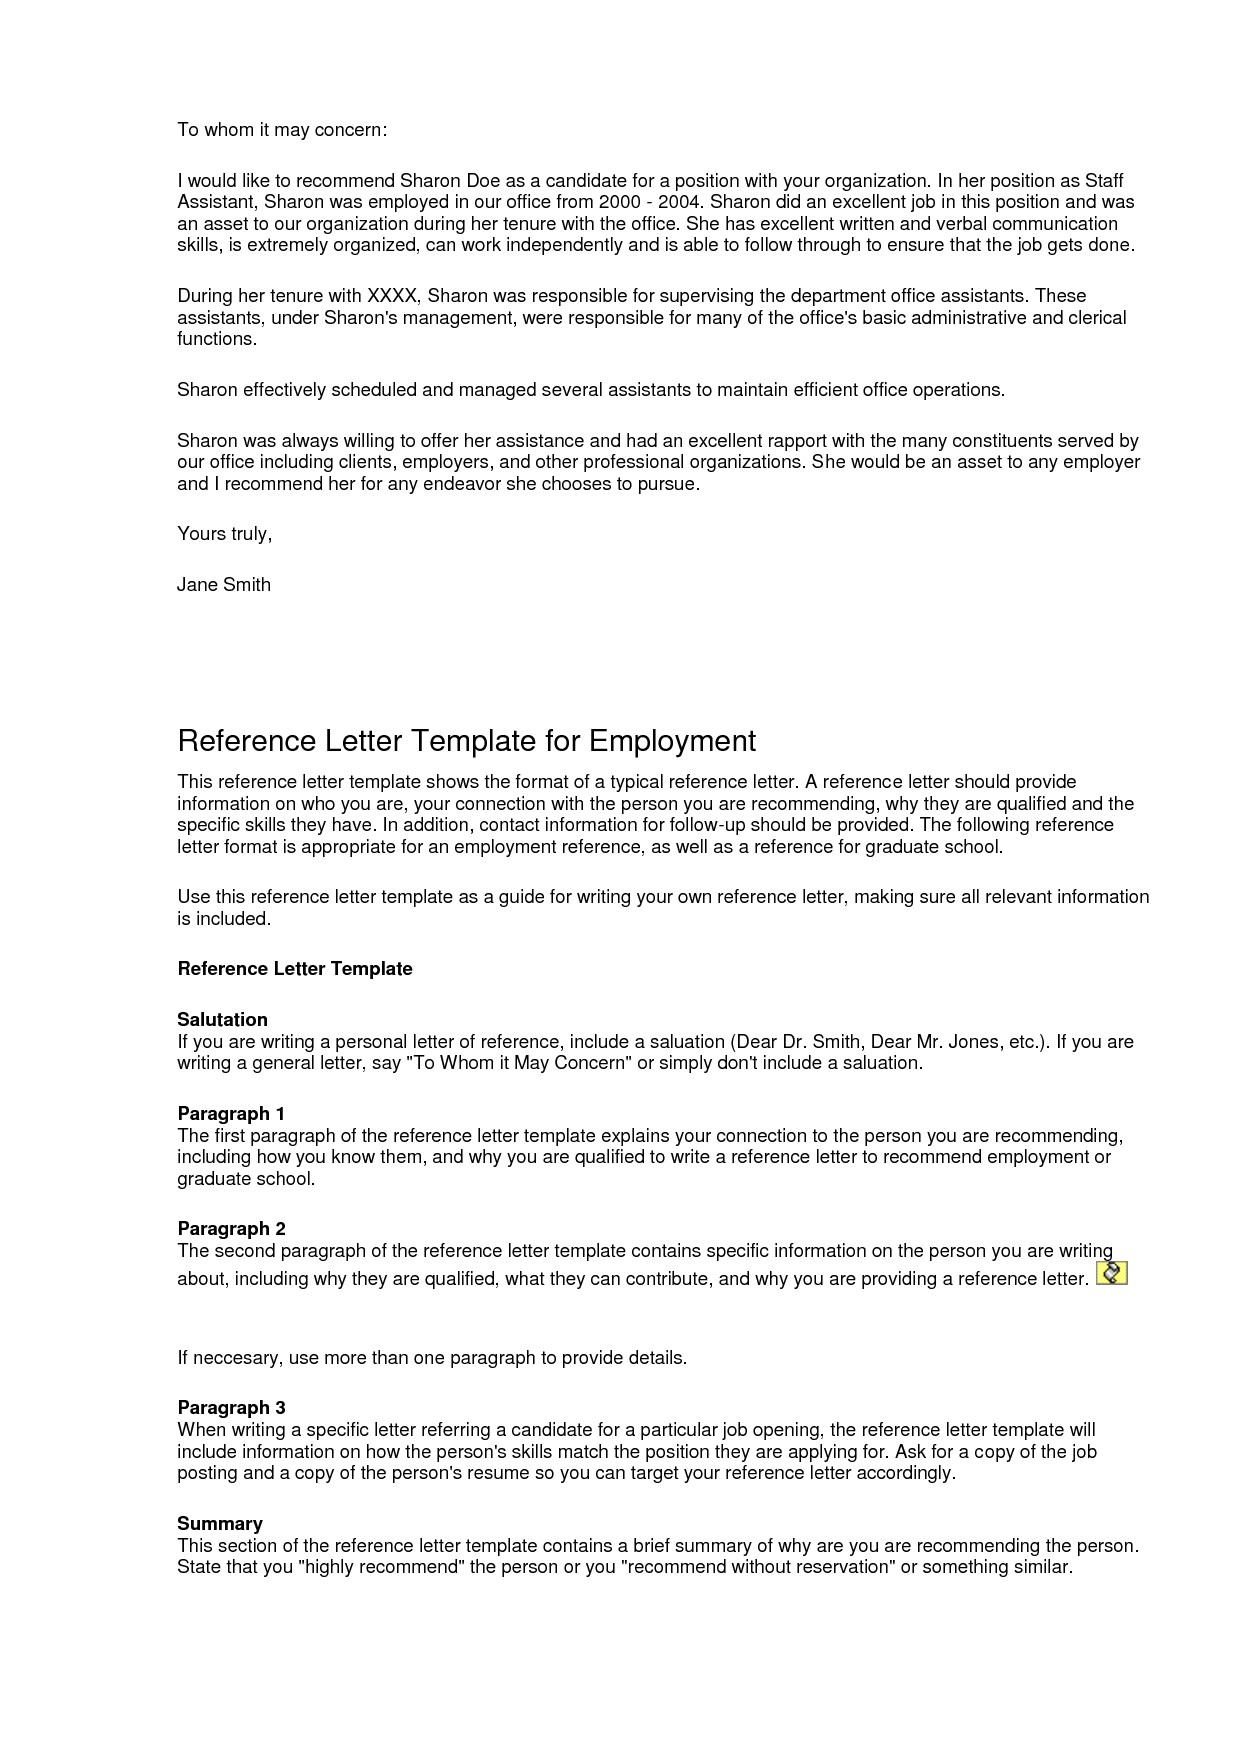 General Letter Of Recommendation Template - Writing A Letter Re Mendation for A Student for A Job New